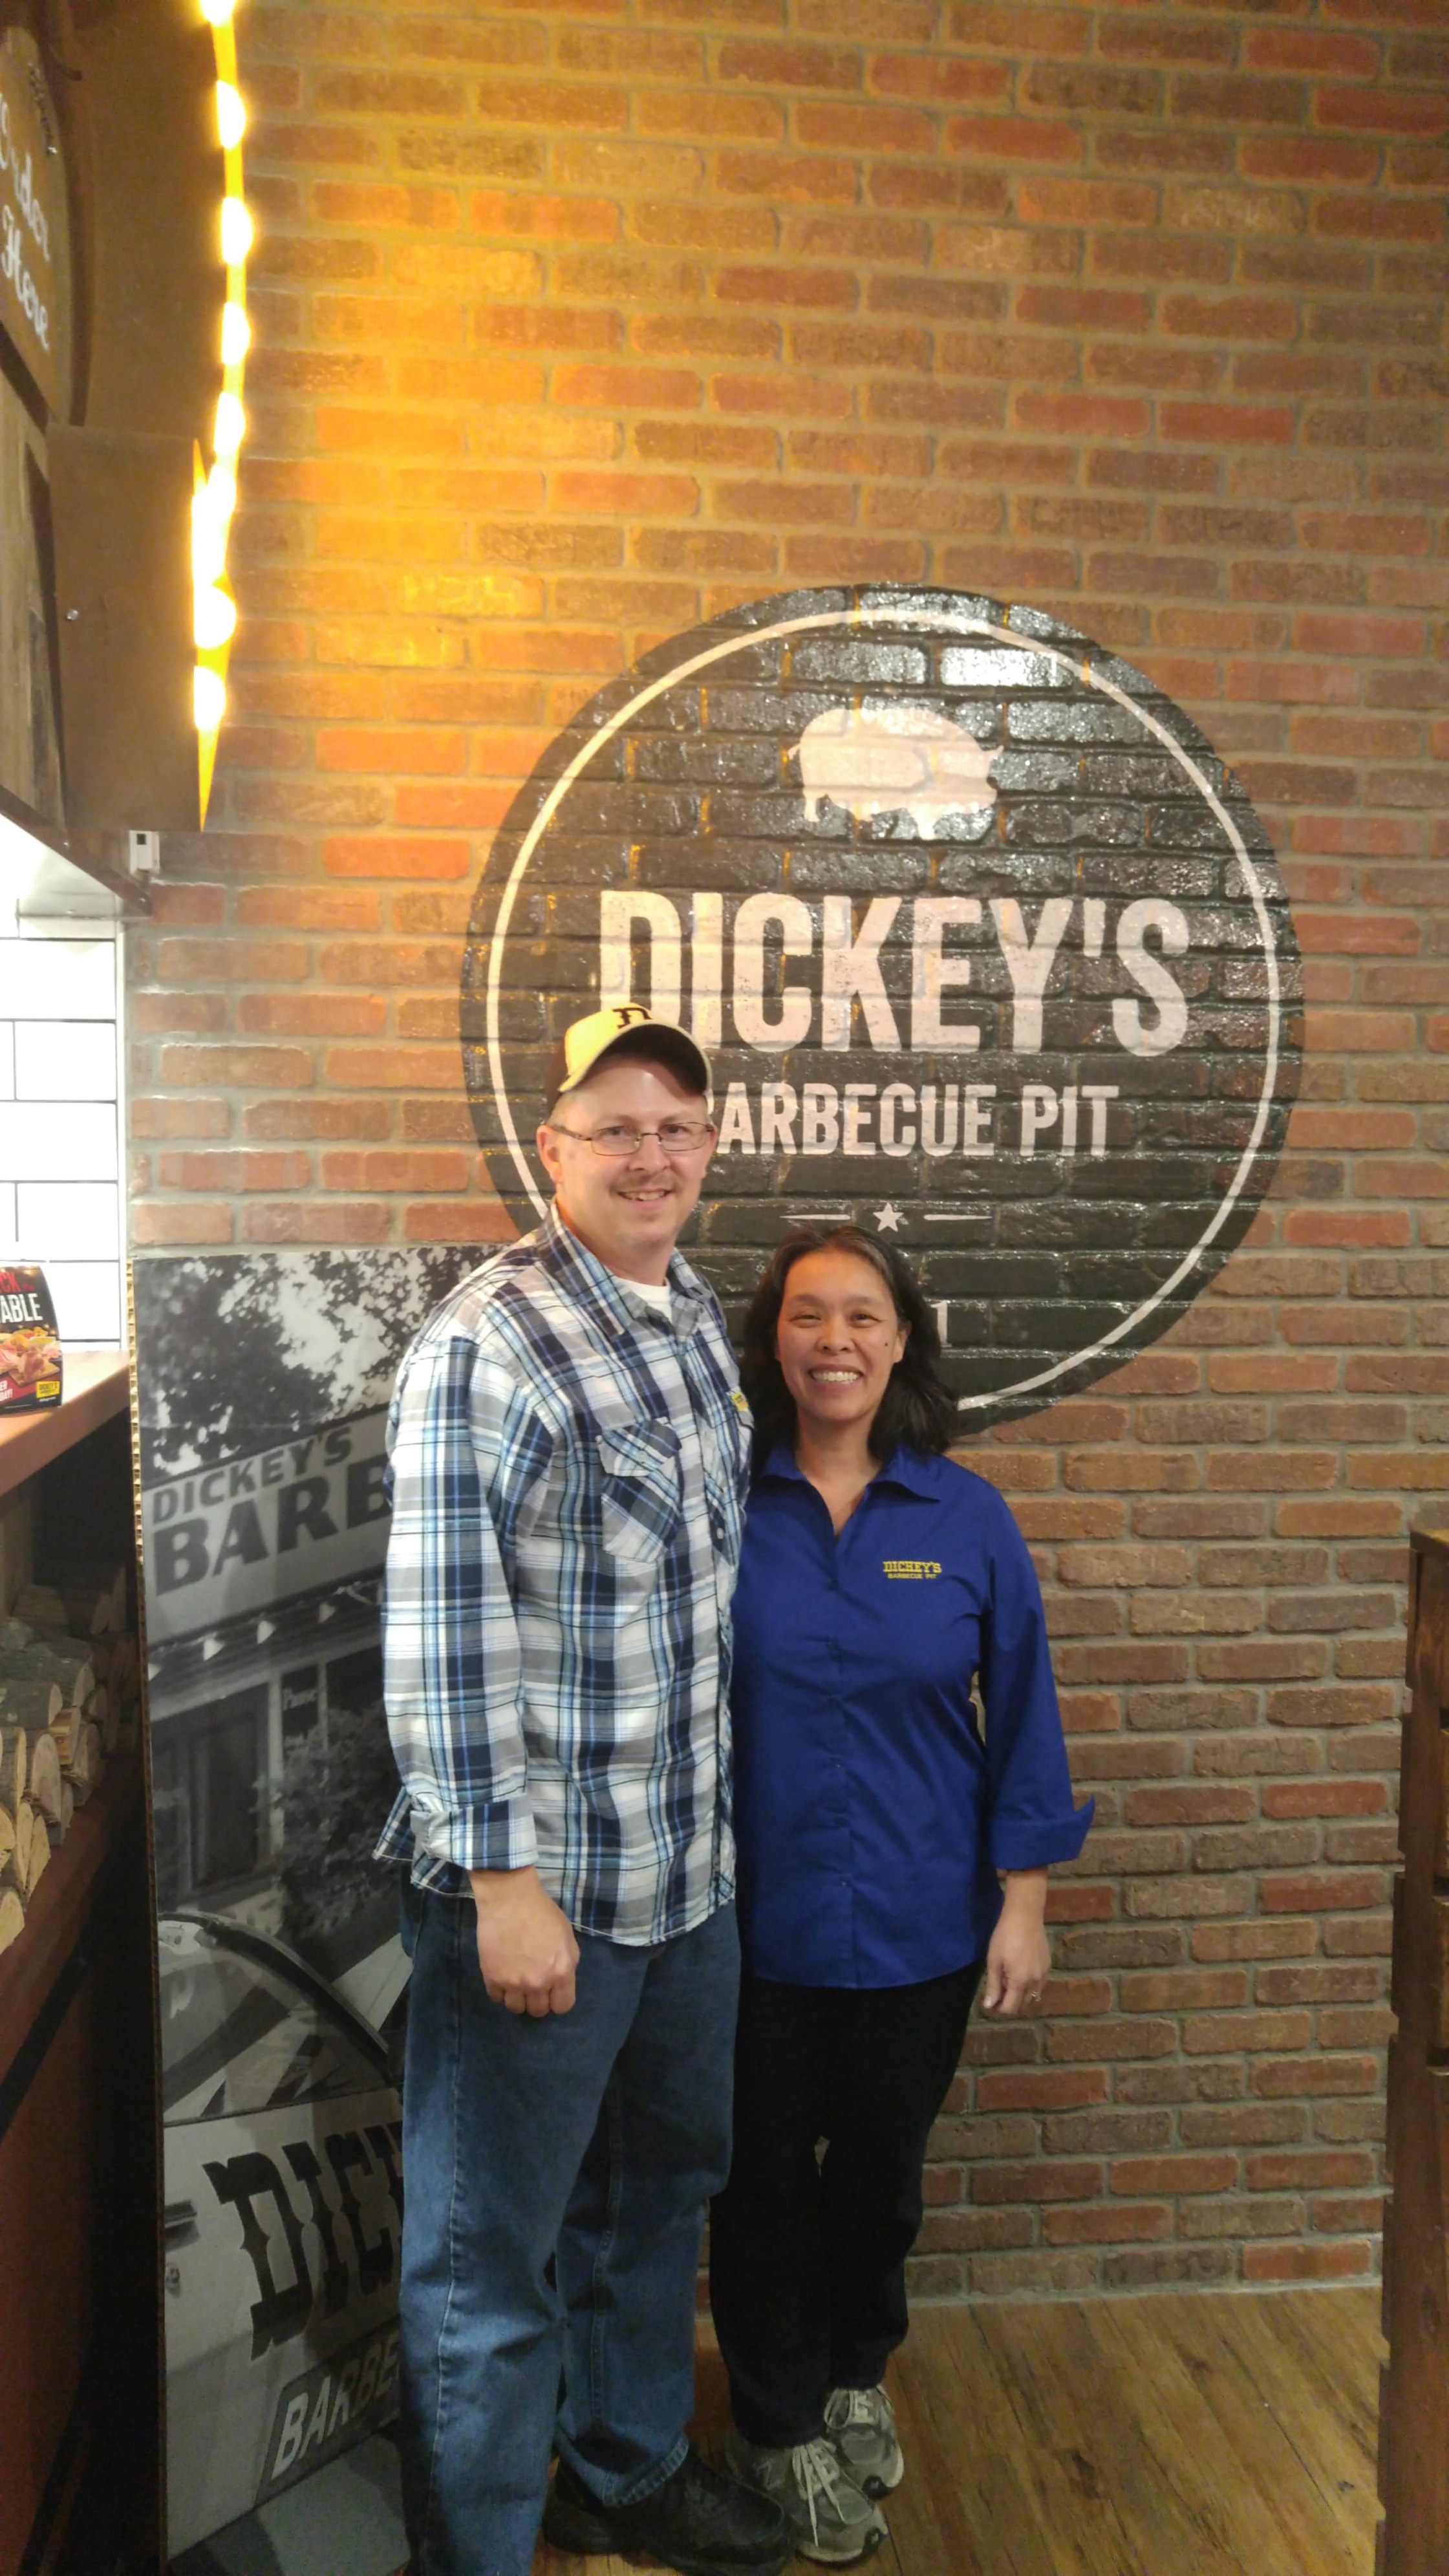 Dickey's Fires Up the Pit in Cary, NC